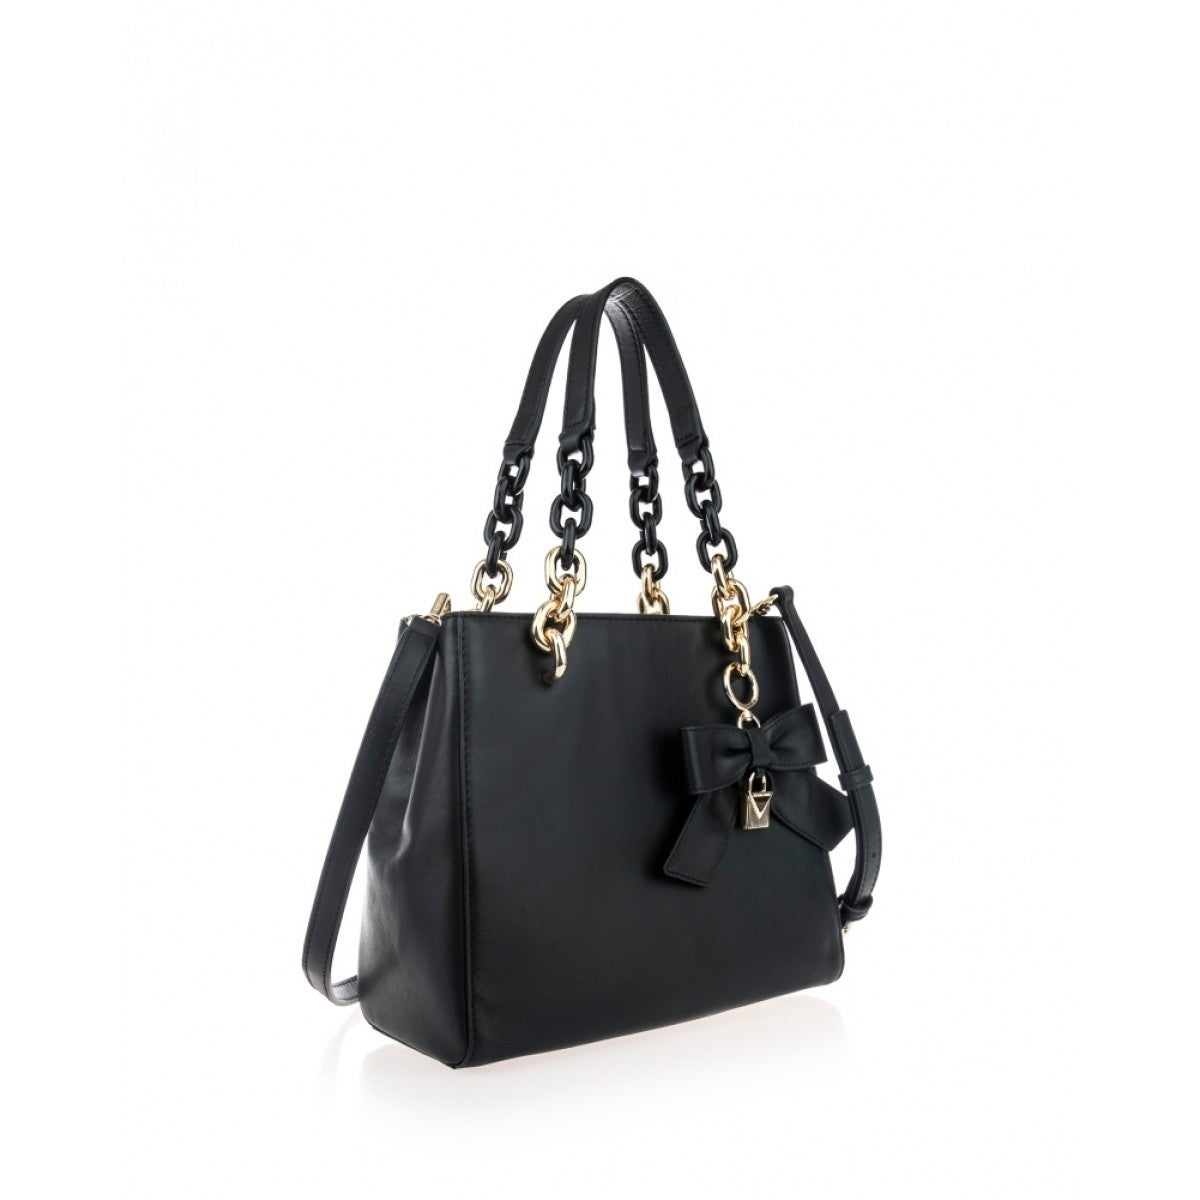 eae4c2ea0dc13 Shop MICHAEL Michael Kors Cynthia Small North South Convertible Satchel  Black - Free Shipping Today - Overstock - 20301006